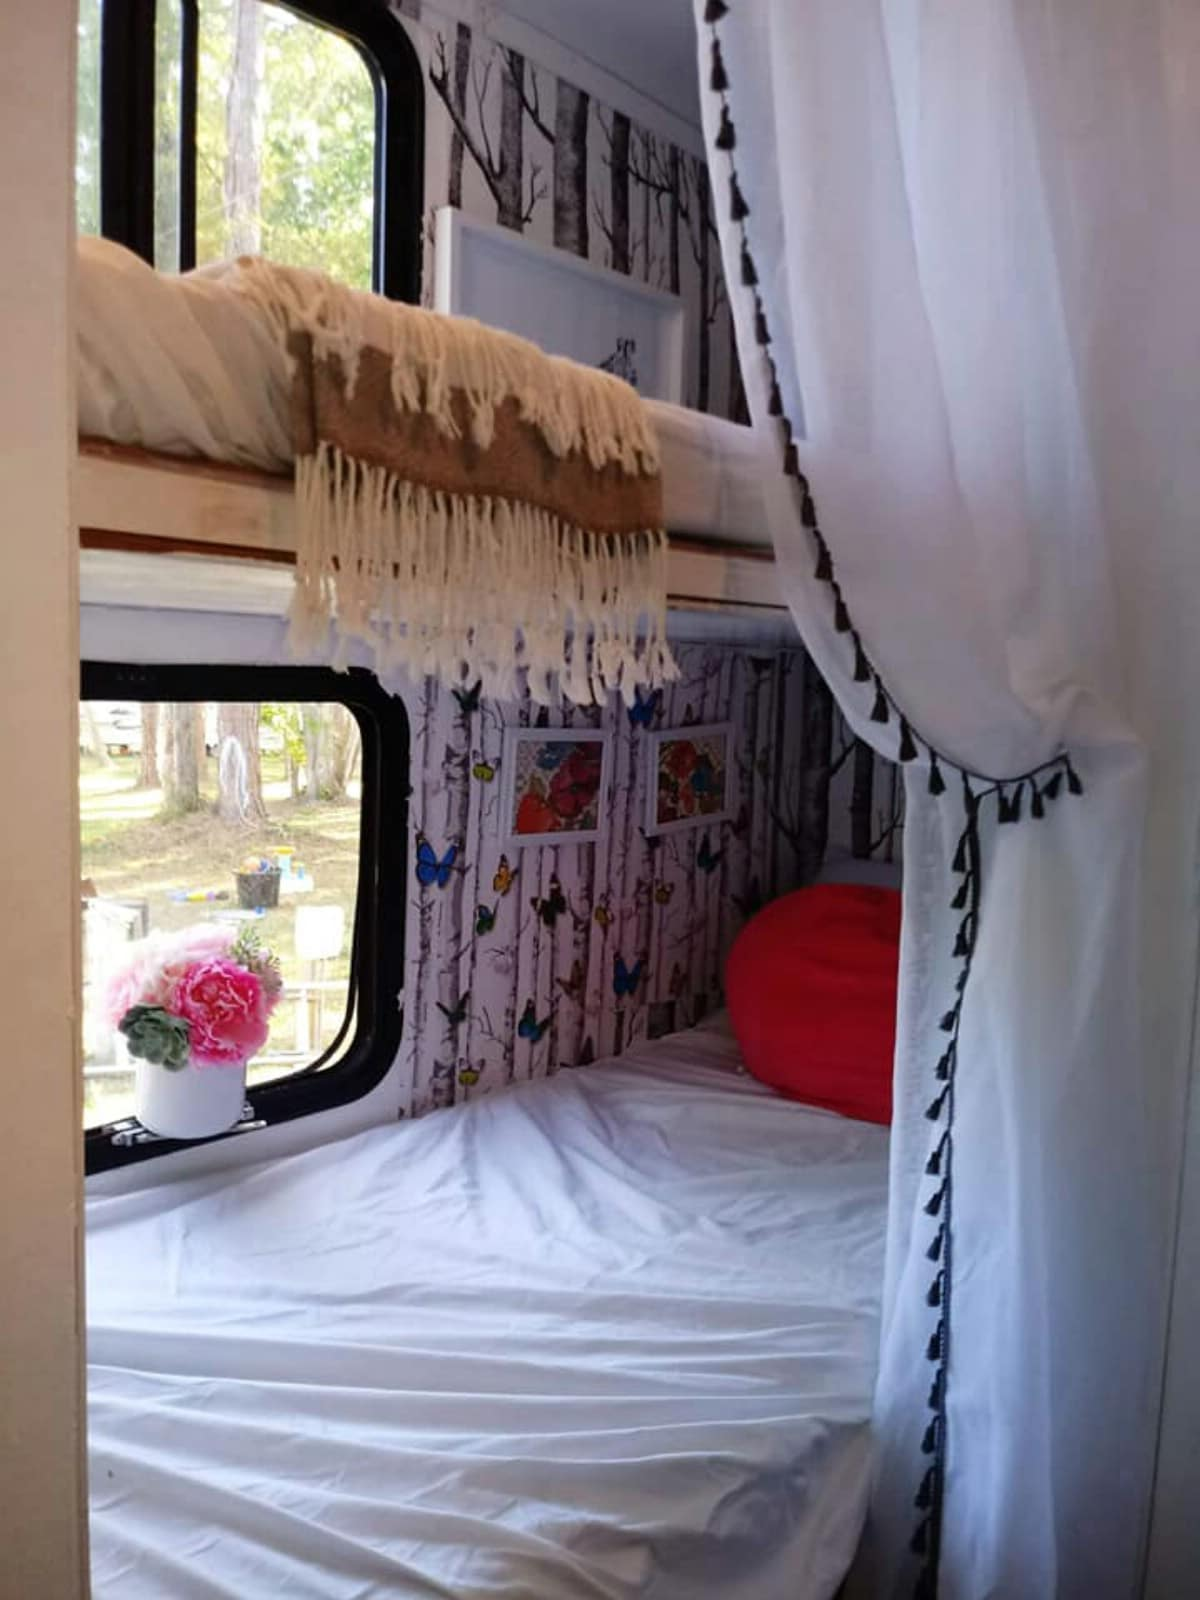 Camper bunk with window and curtains